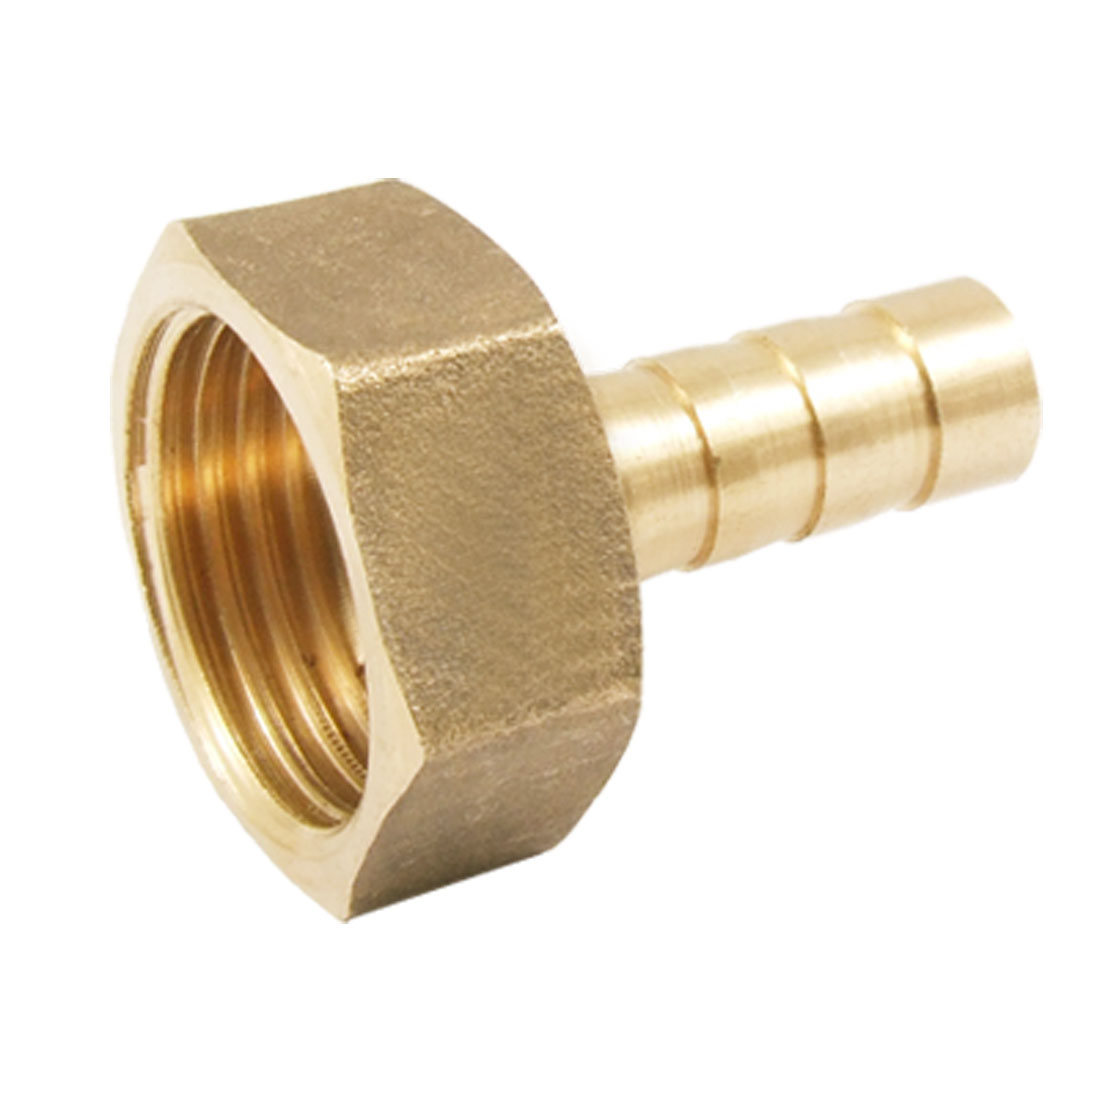 8-2mm-Water-Gas-Air-Hose-Barb-1-2-Female-Thread-Brass-Straight-Connector